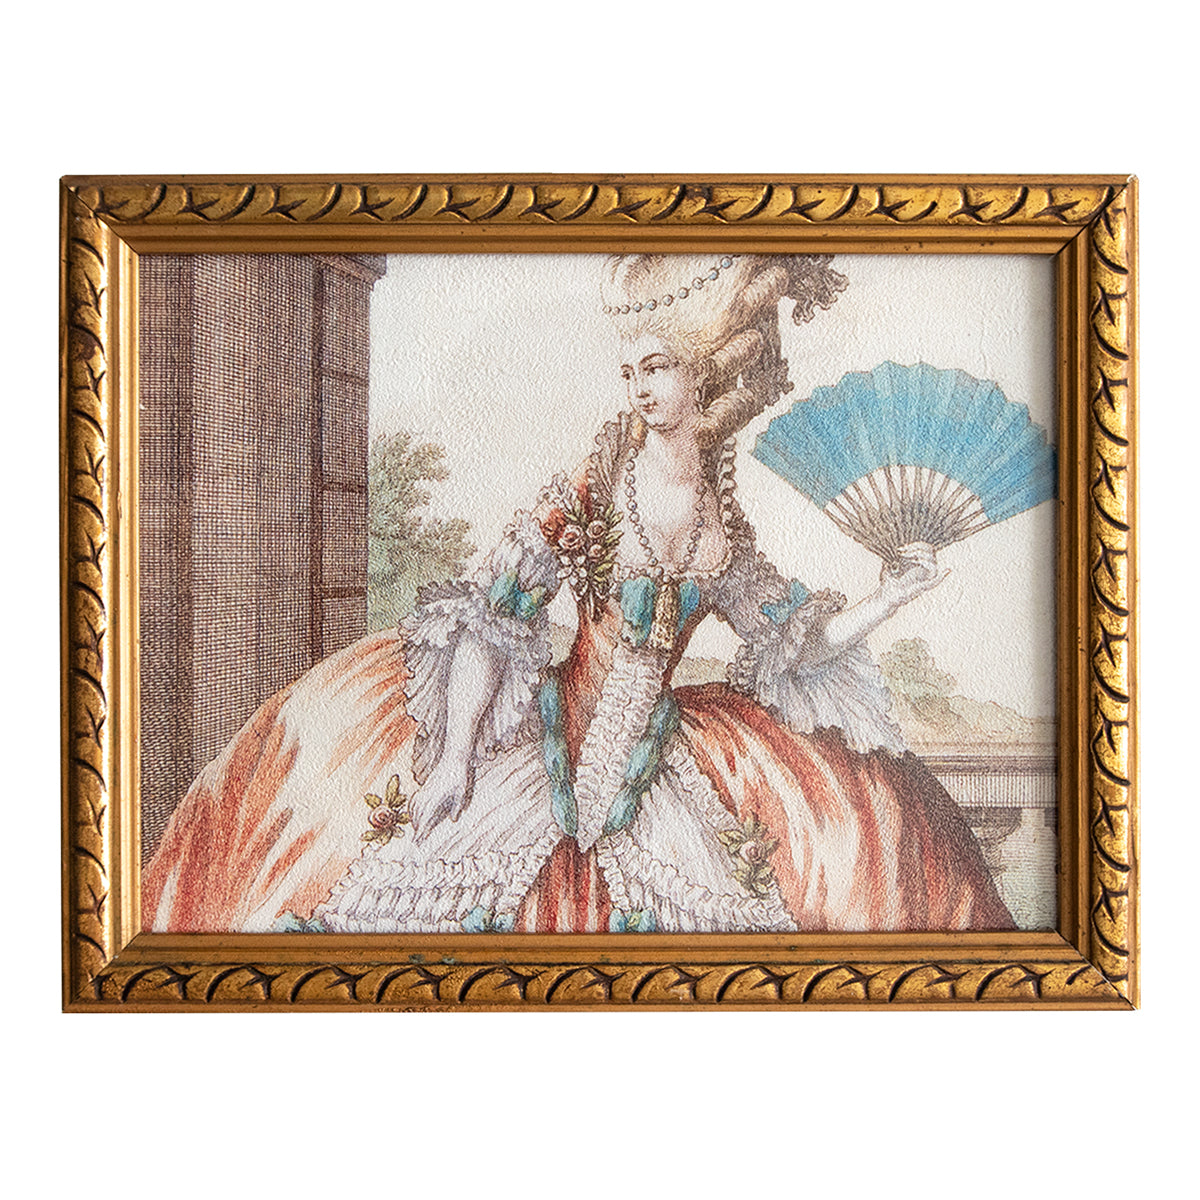 27×21cm アンティークフレーム Gold Frame Lady with Fan